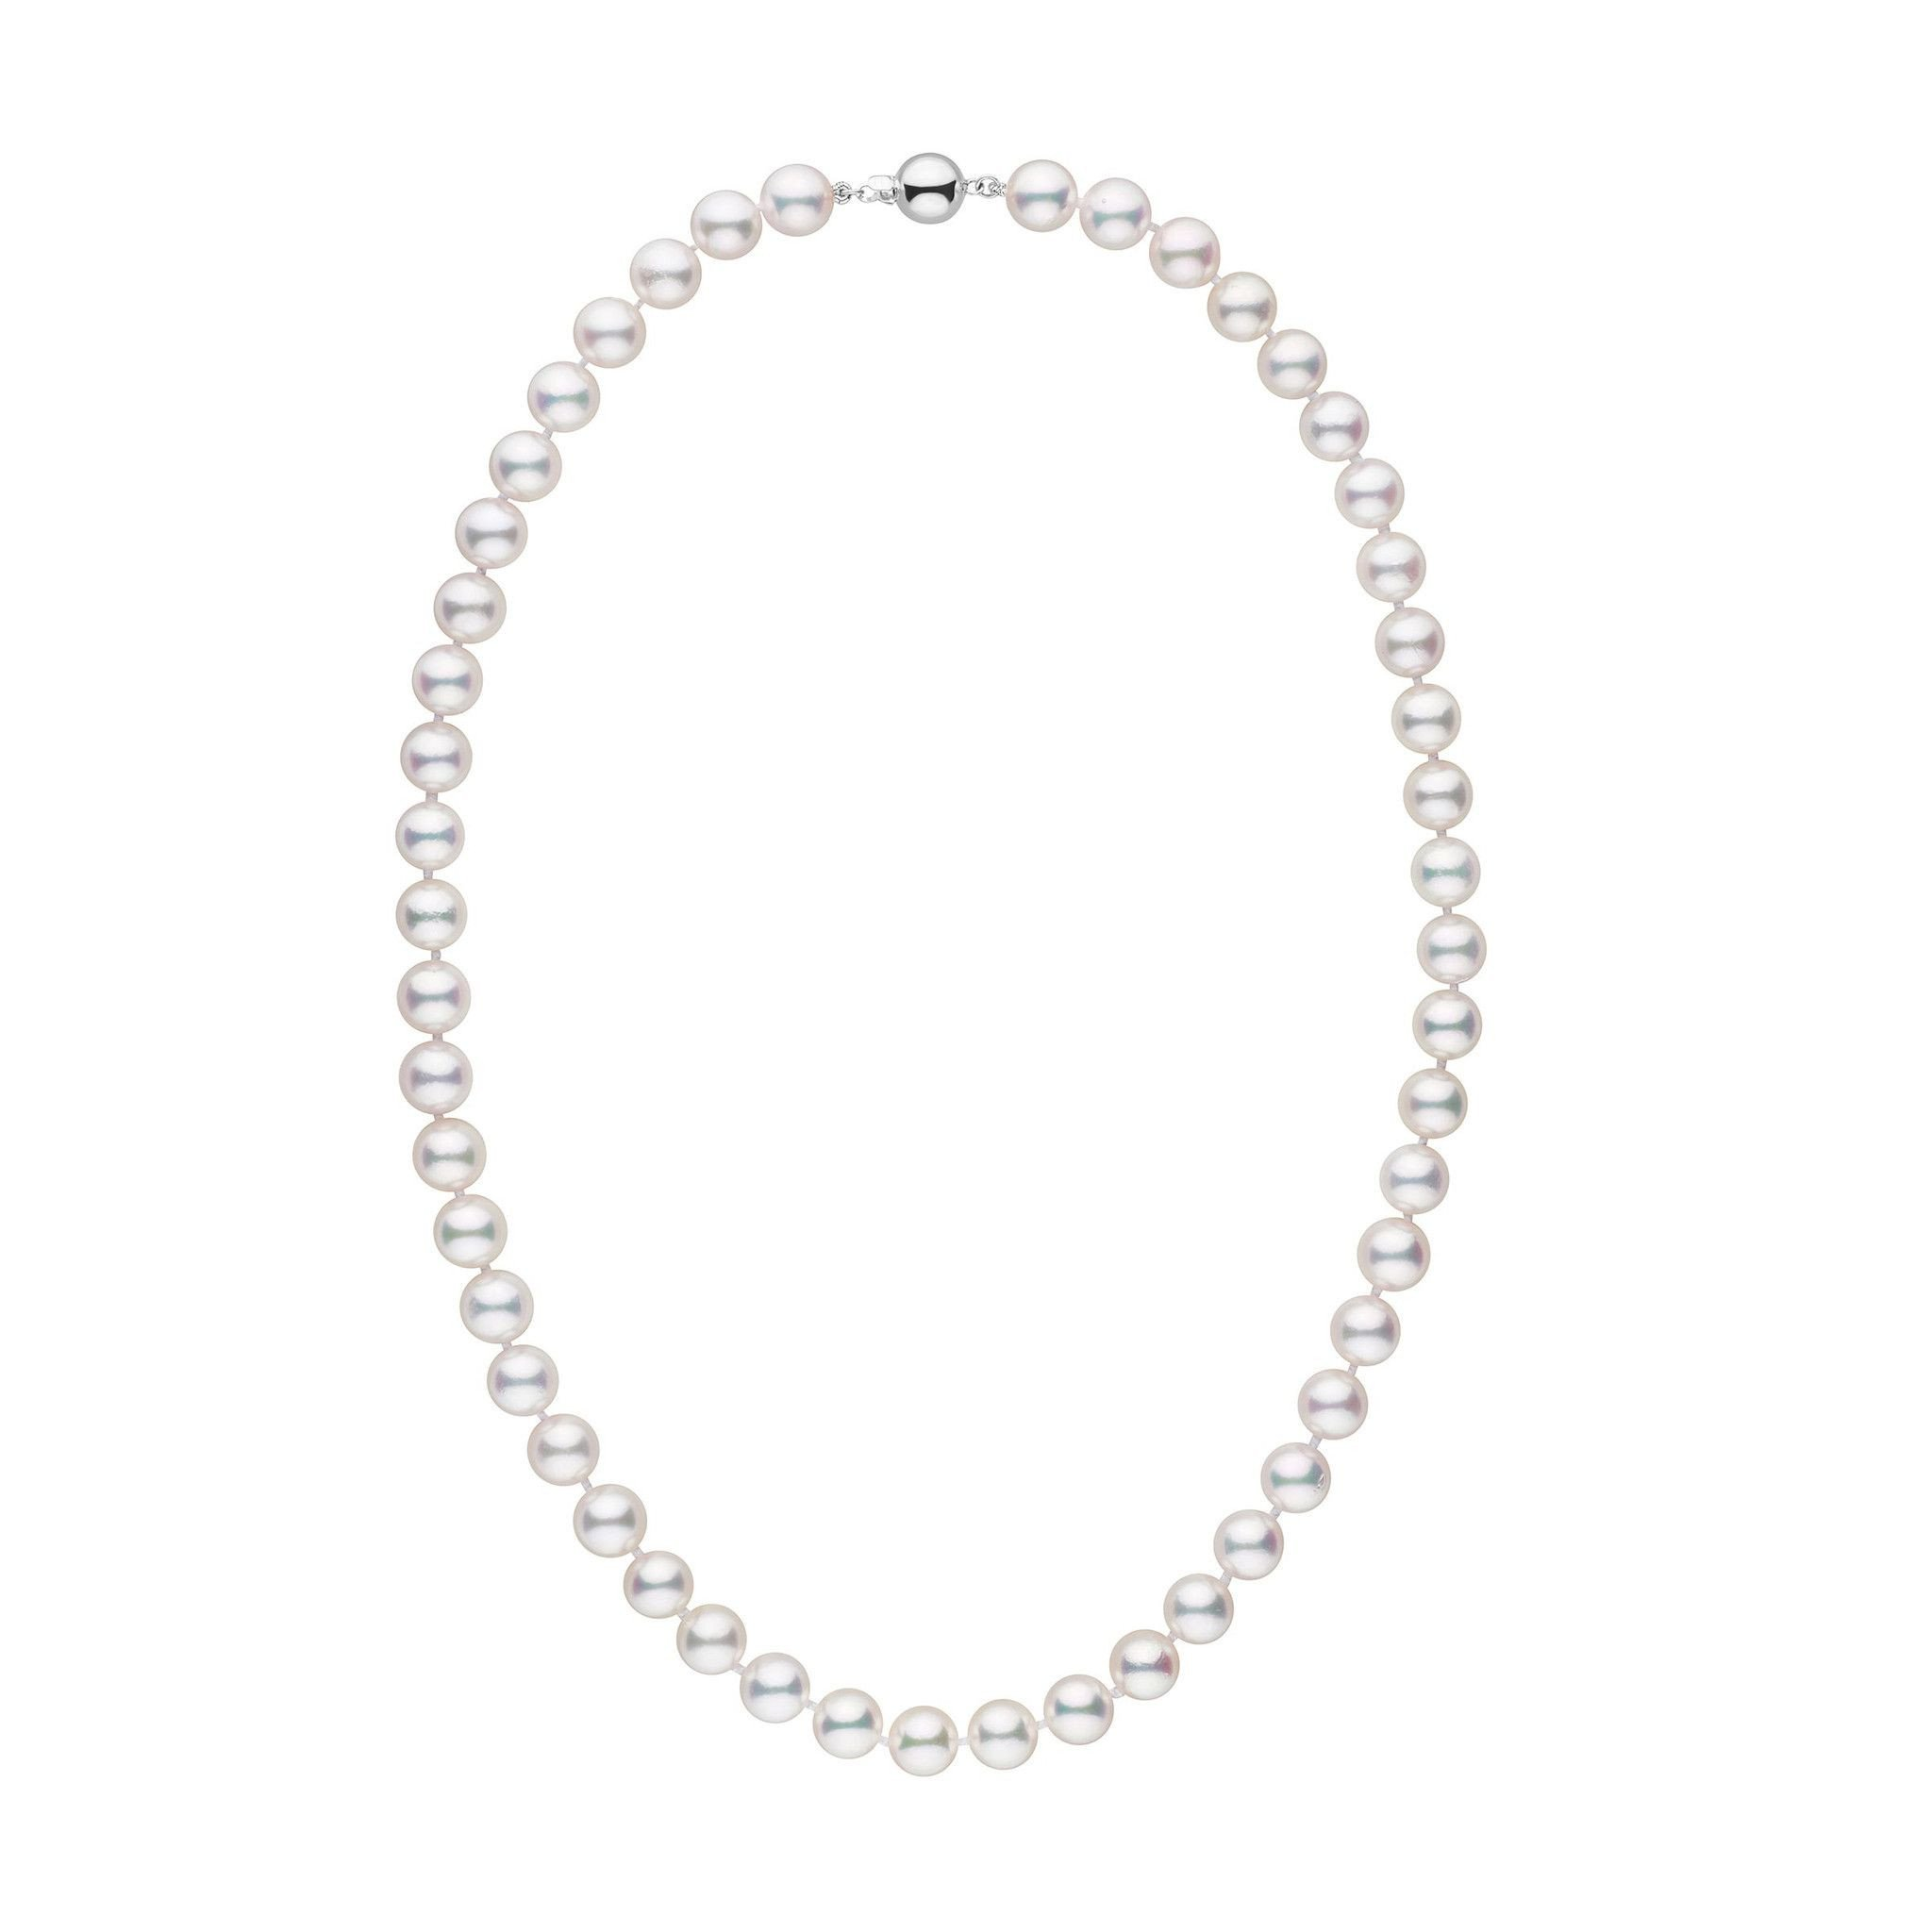 8.0-8.5 mm 18 inch AAA White Akoya Cultured Pearl Necklace - 14K White Gold